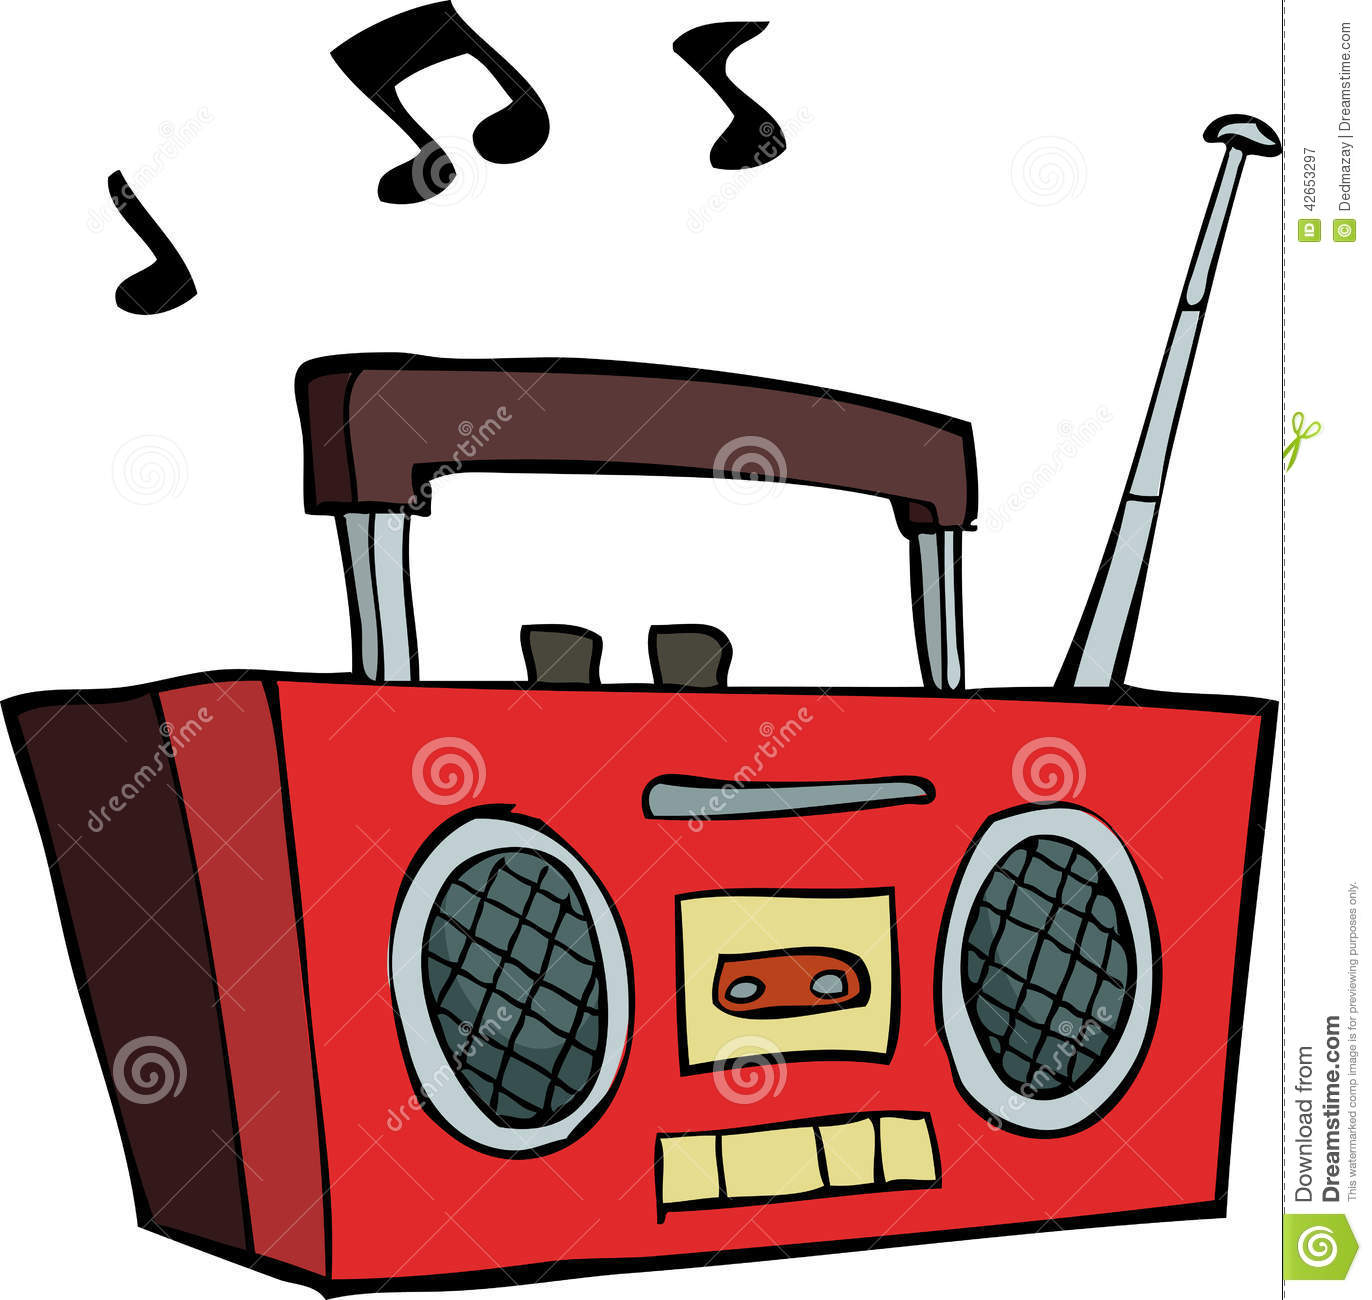 Boombox Stock Vector - Image: 42653297